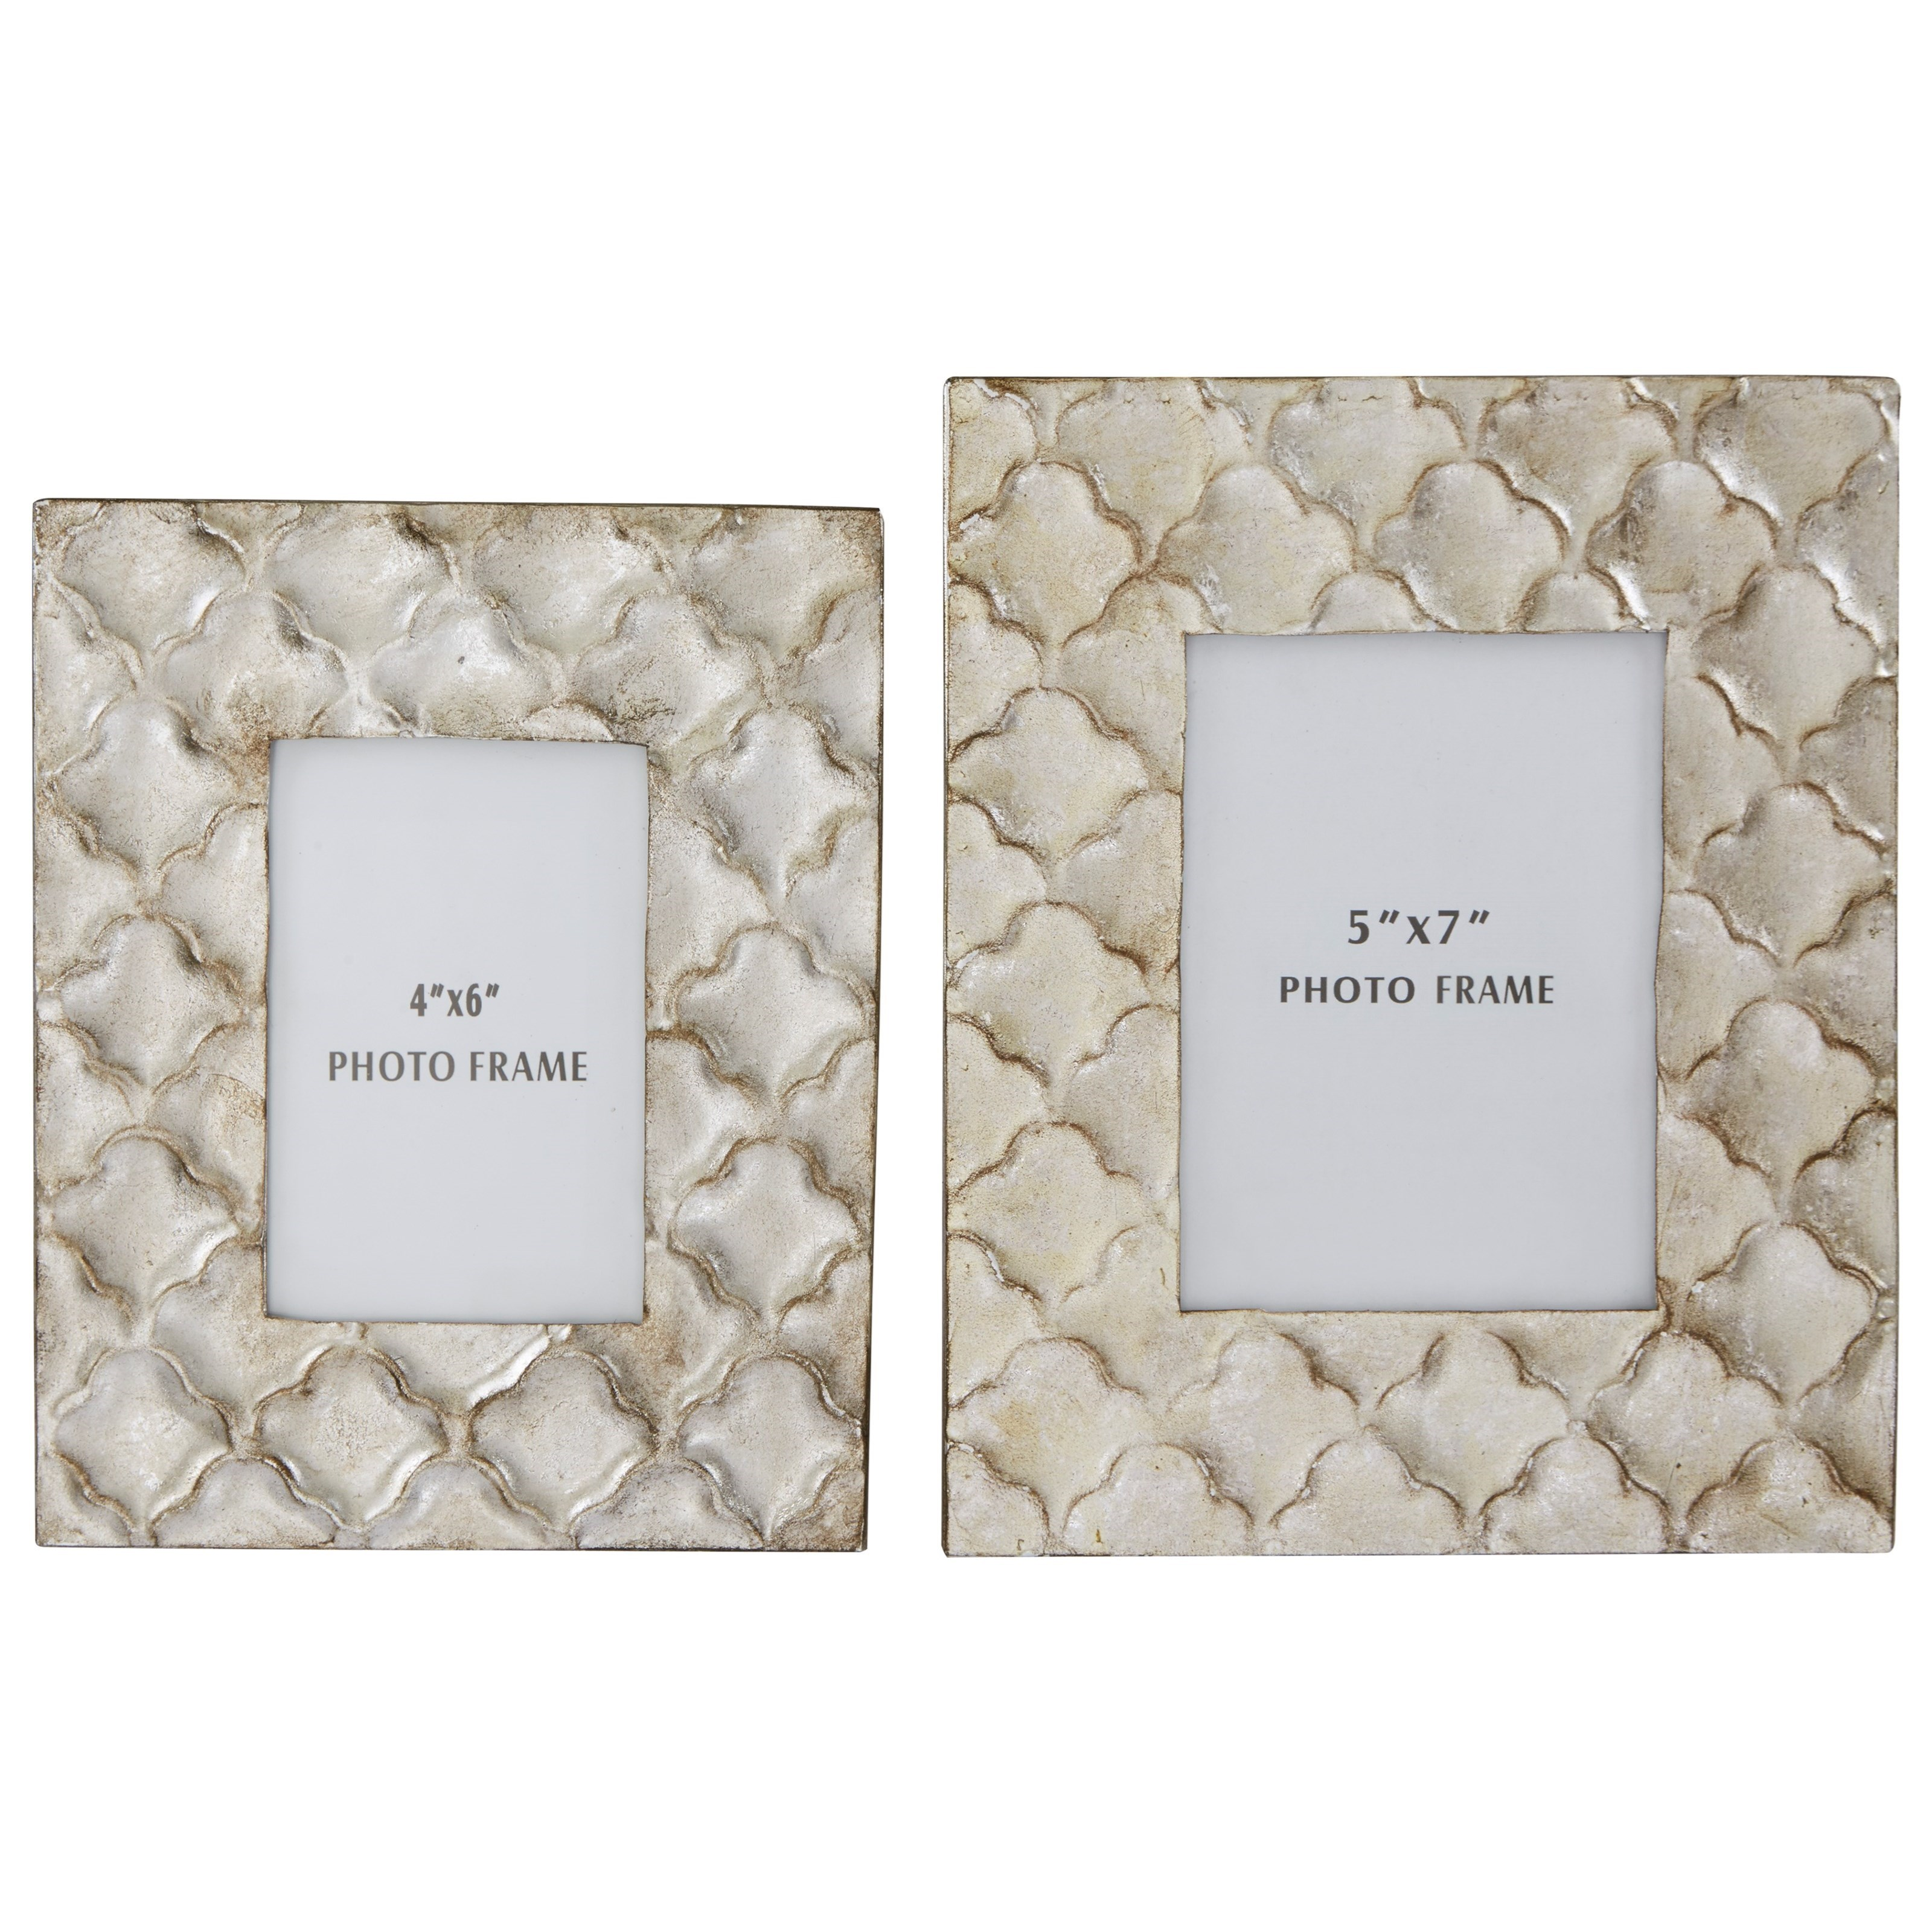 Signature Design by Ashley Accents Kaeden Silver Leaf Photo Frame (Set of 2) - Item Number: A2000186F